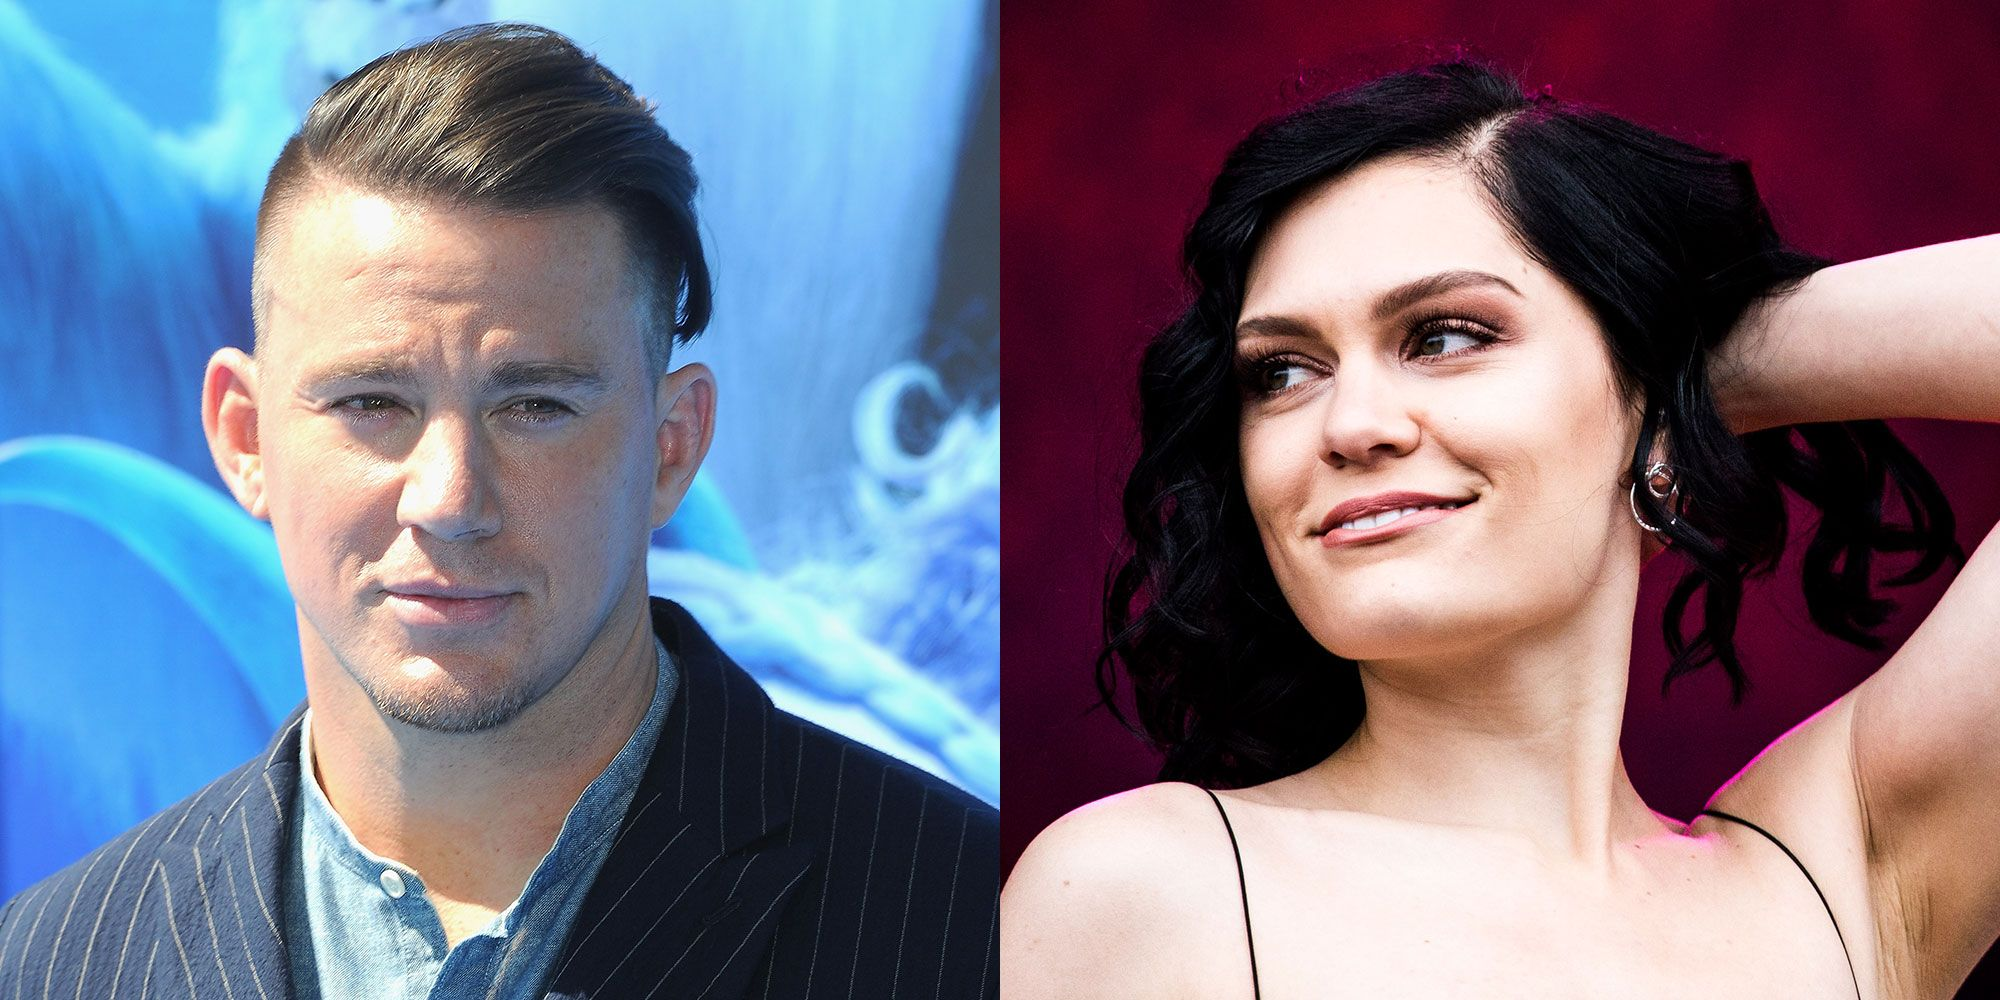 Channing Tatum Is Dating Jessie J Now